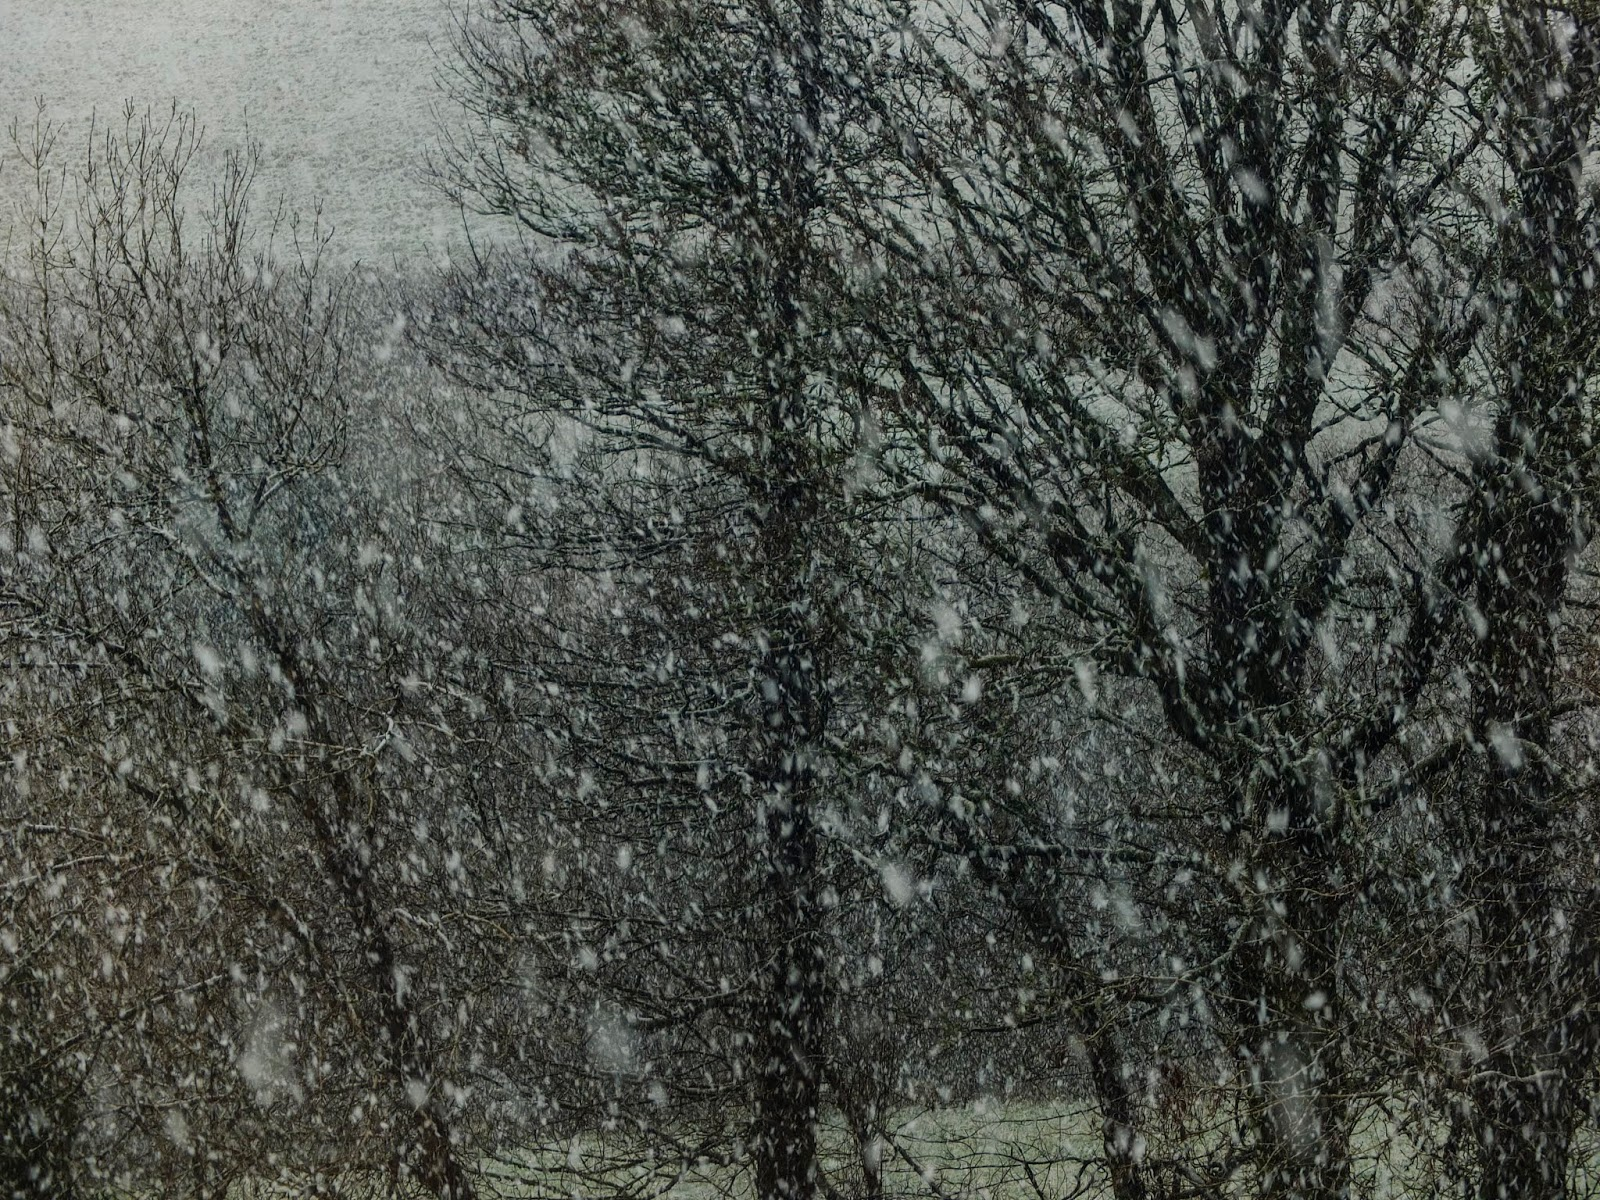 Heavy snow falling with bare tree branches in the background.